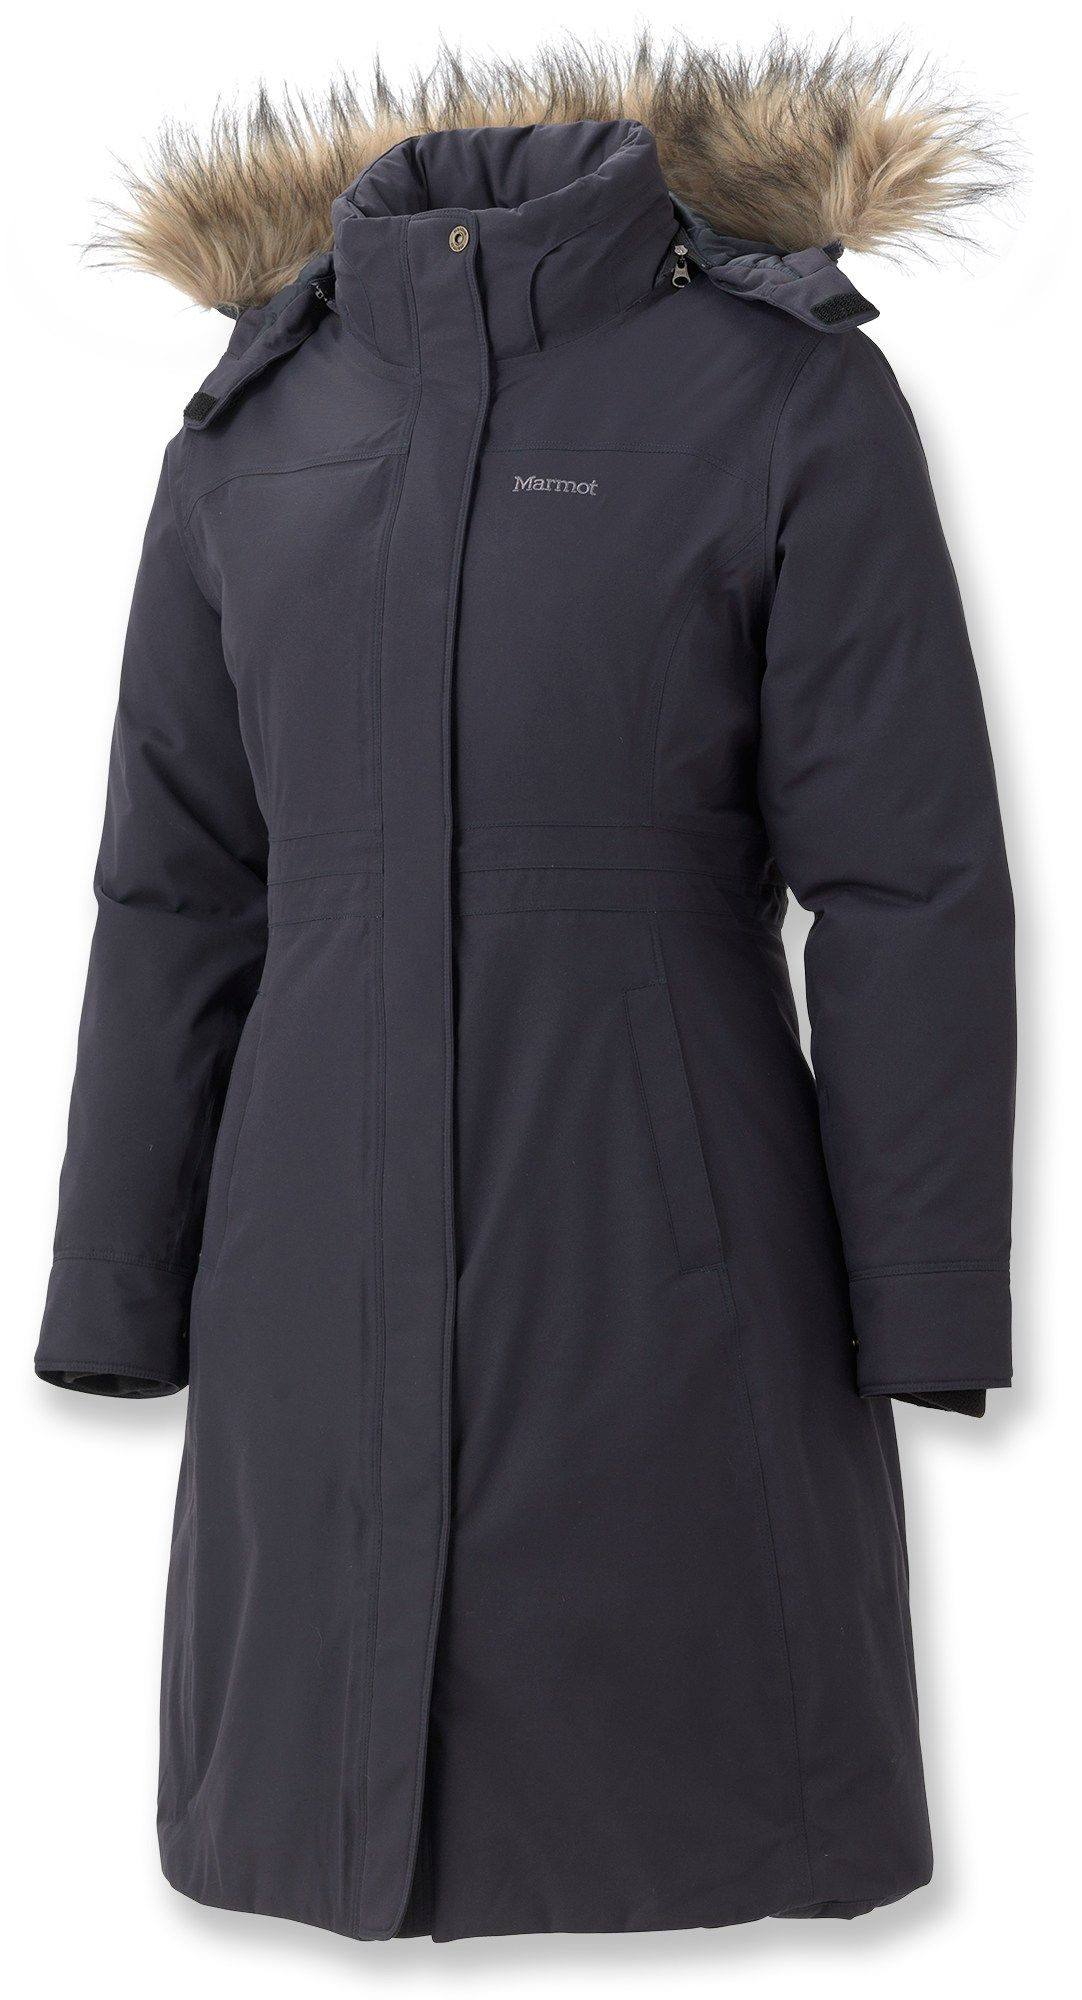 $380 Marmot Chelsea Down Coat - Women's - Free Shipping at REI.com ... : marmot quilted jacket - Adamdwight.com